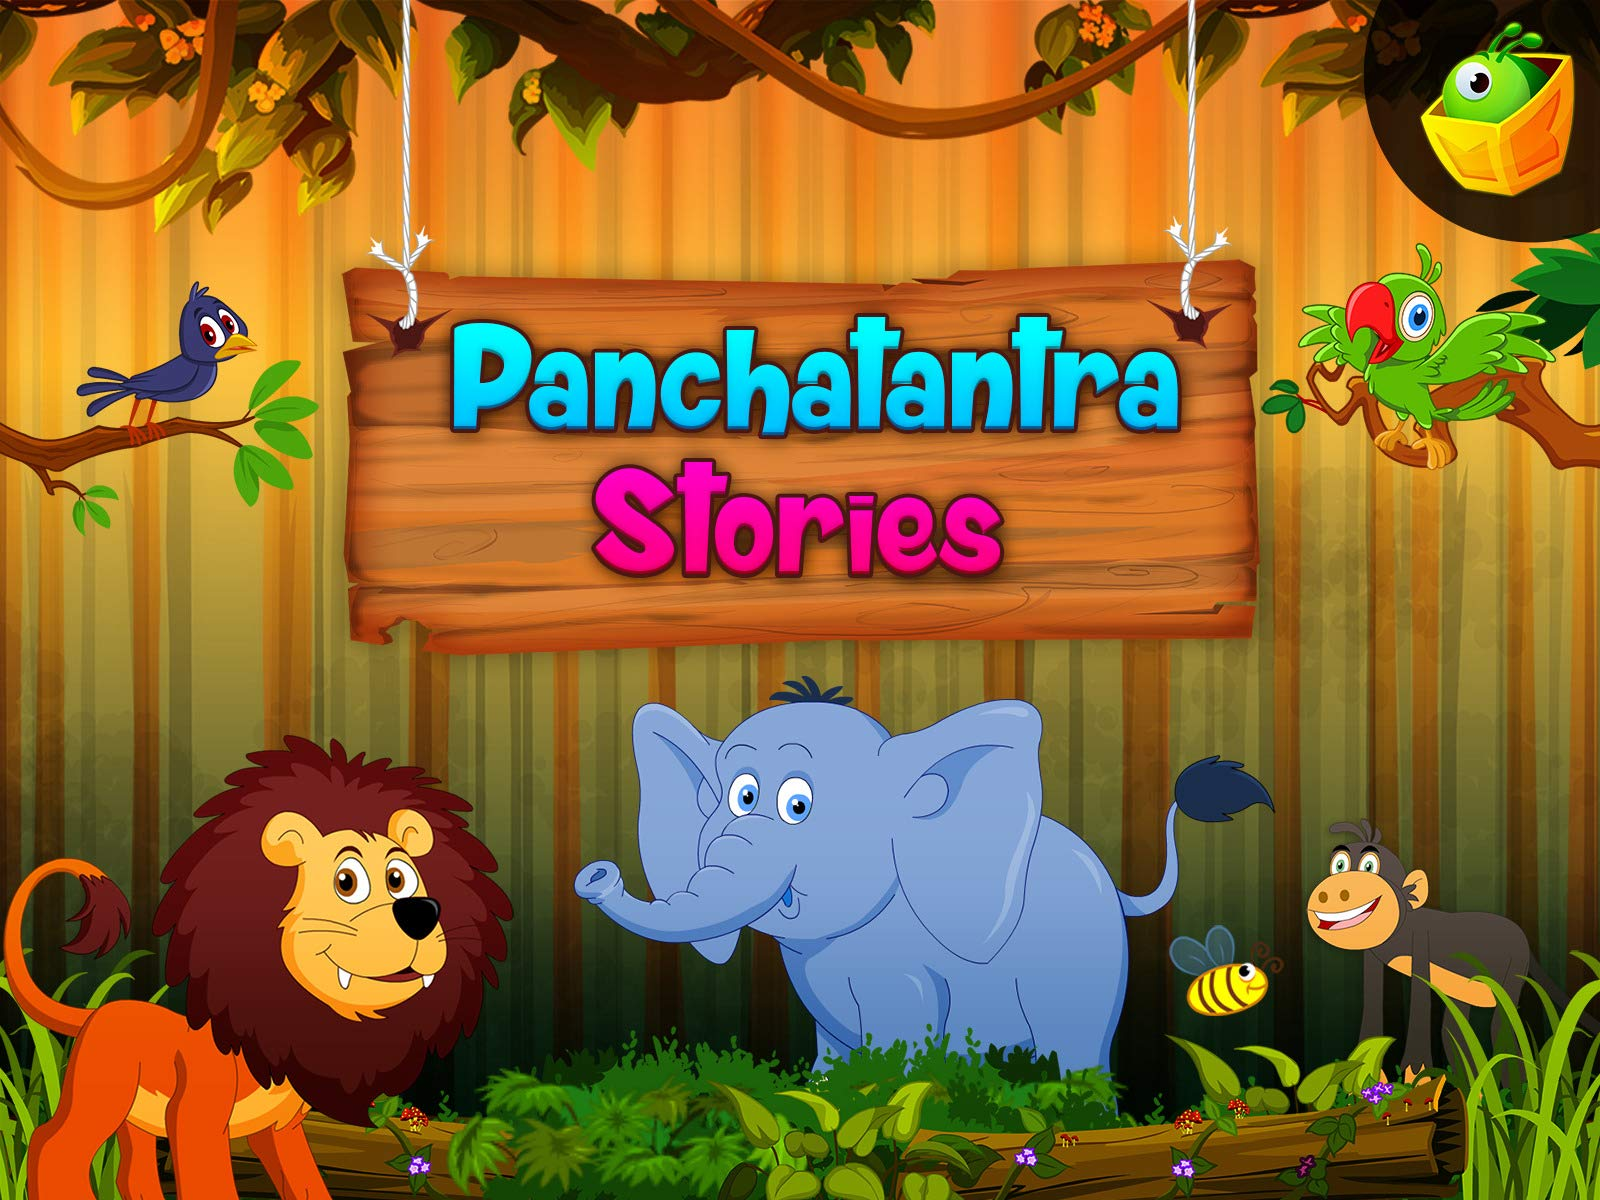 Panchatantra Stories - Season 1